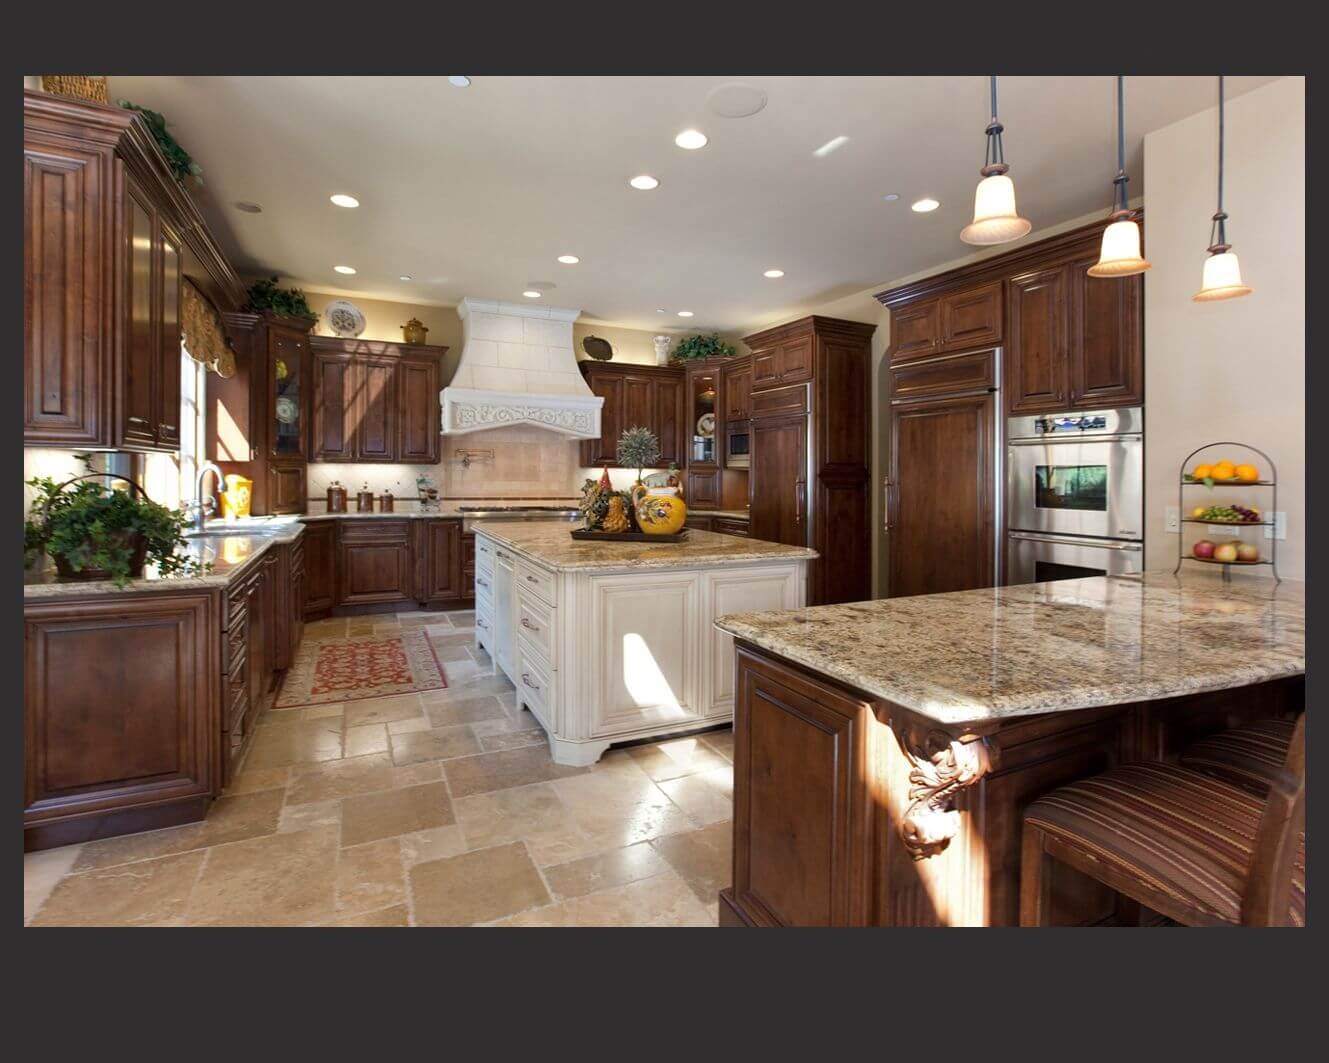 dark kitchen cabinets brown kitchen cabinets Richly detailed U shaped kitchen centers dark wood cabinetry around large white painted wood